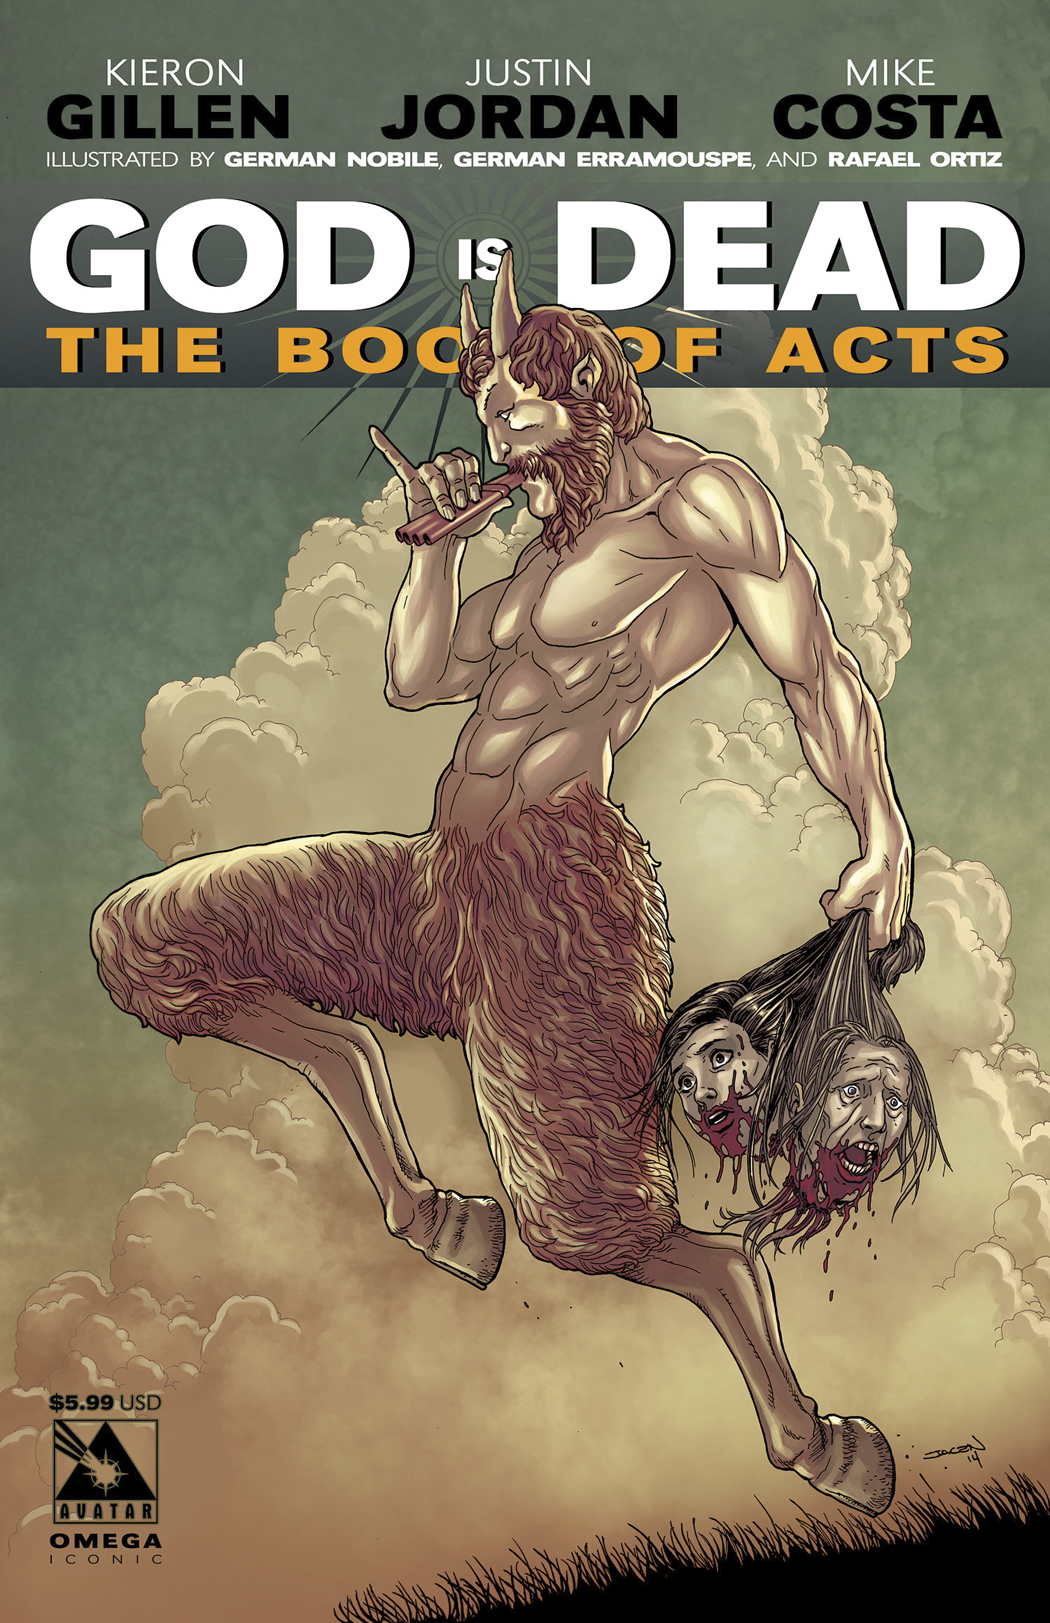 GOD IS DEAD BOOK OF ACTS OMEGA ICONIC CVR